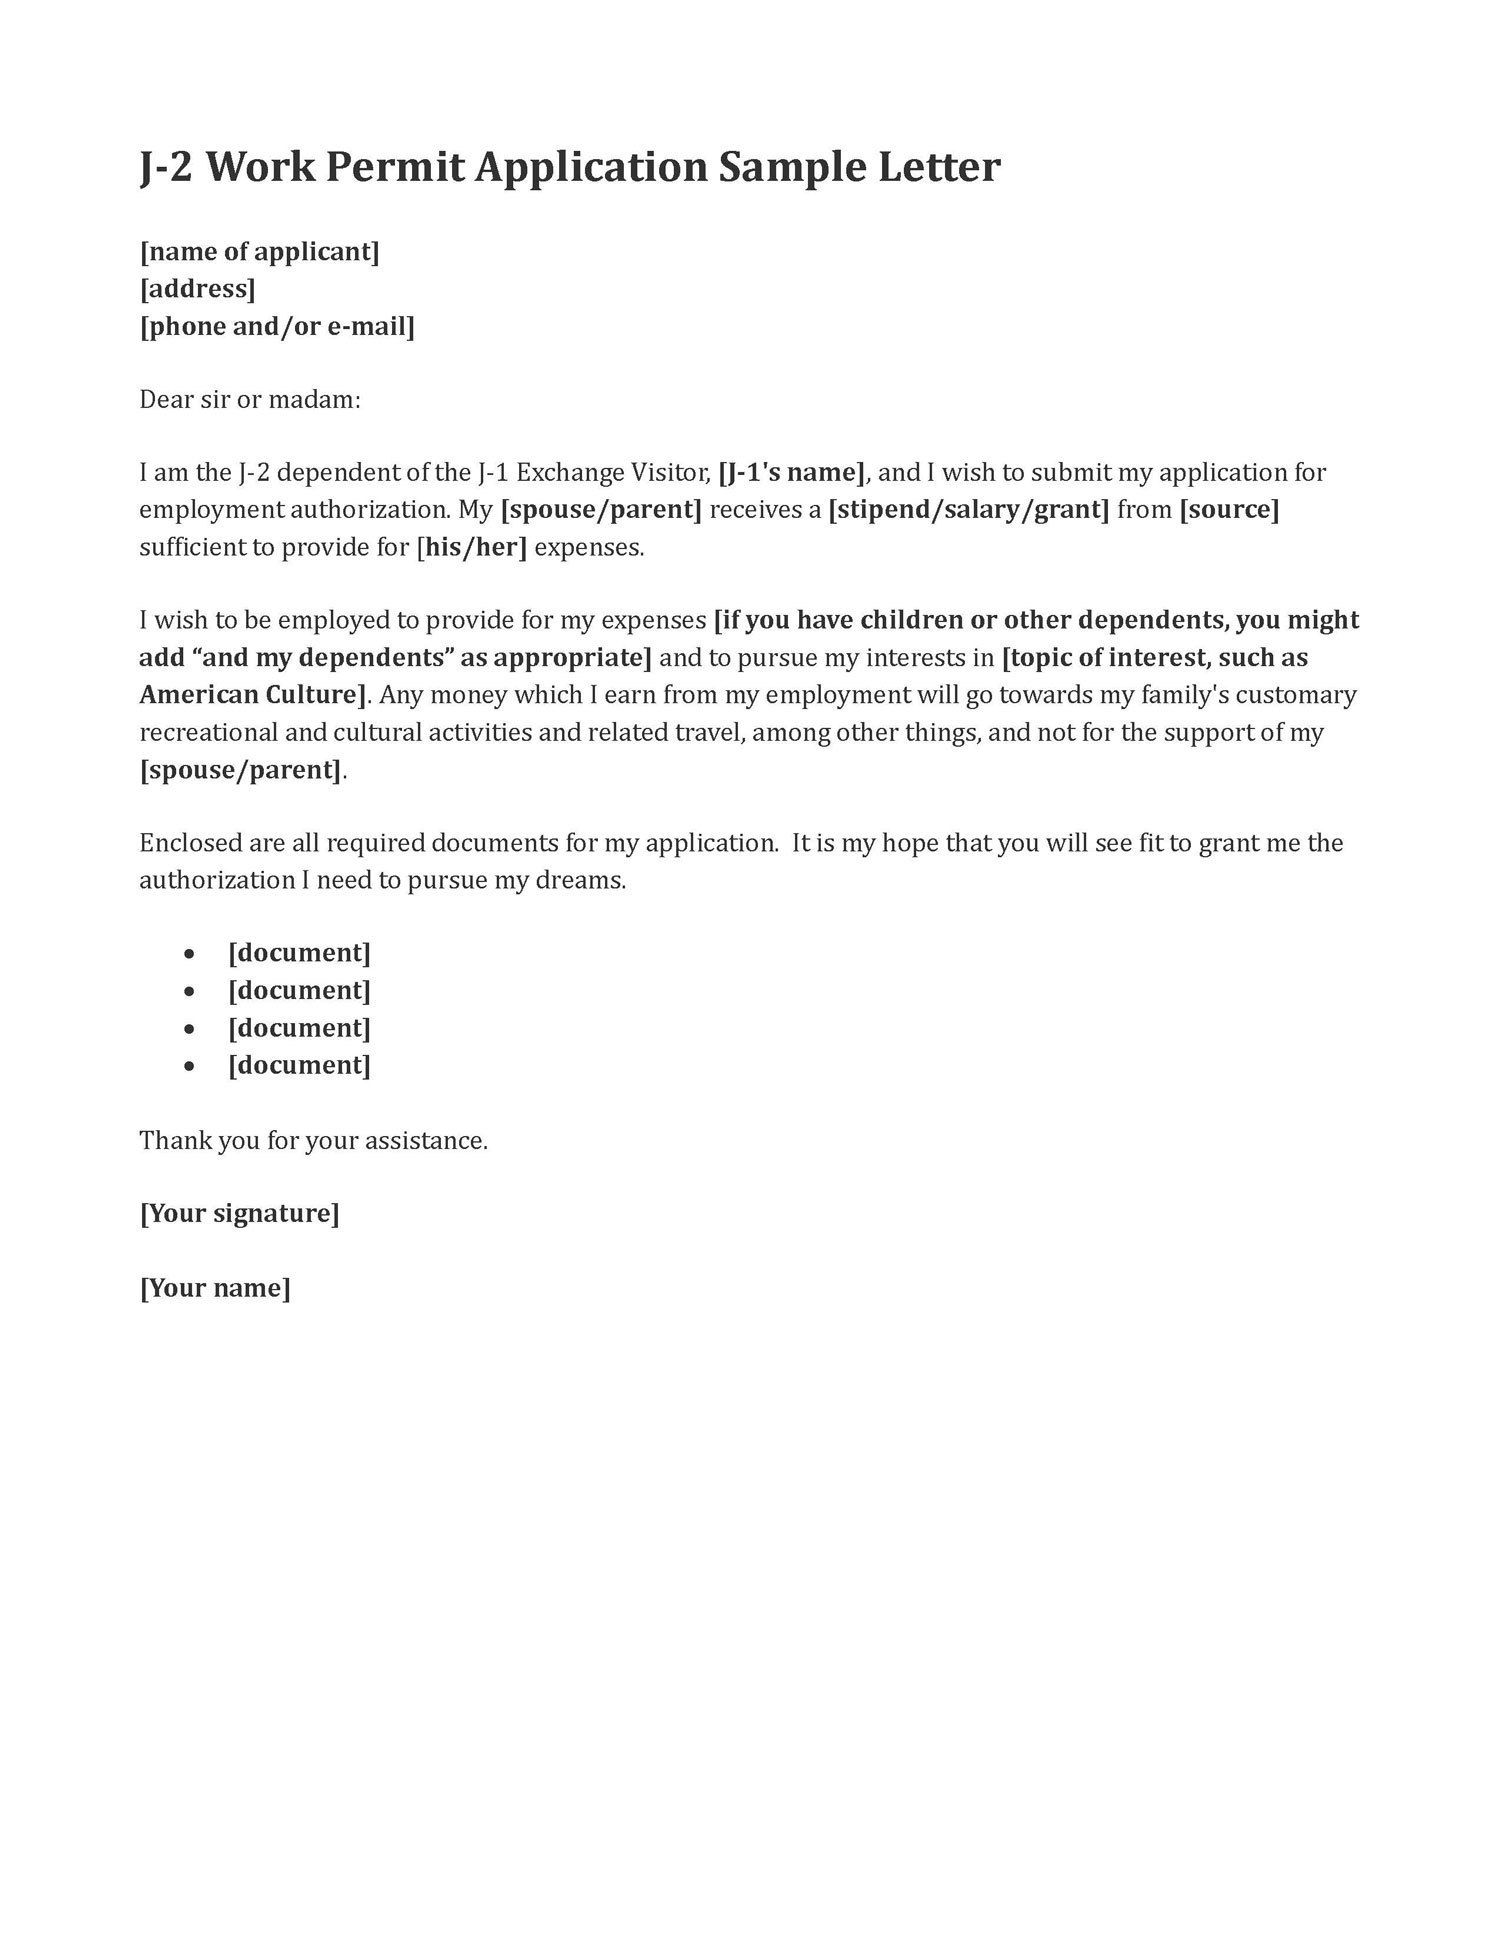 Cover Letters That Worked Letter Work Sample Permit